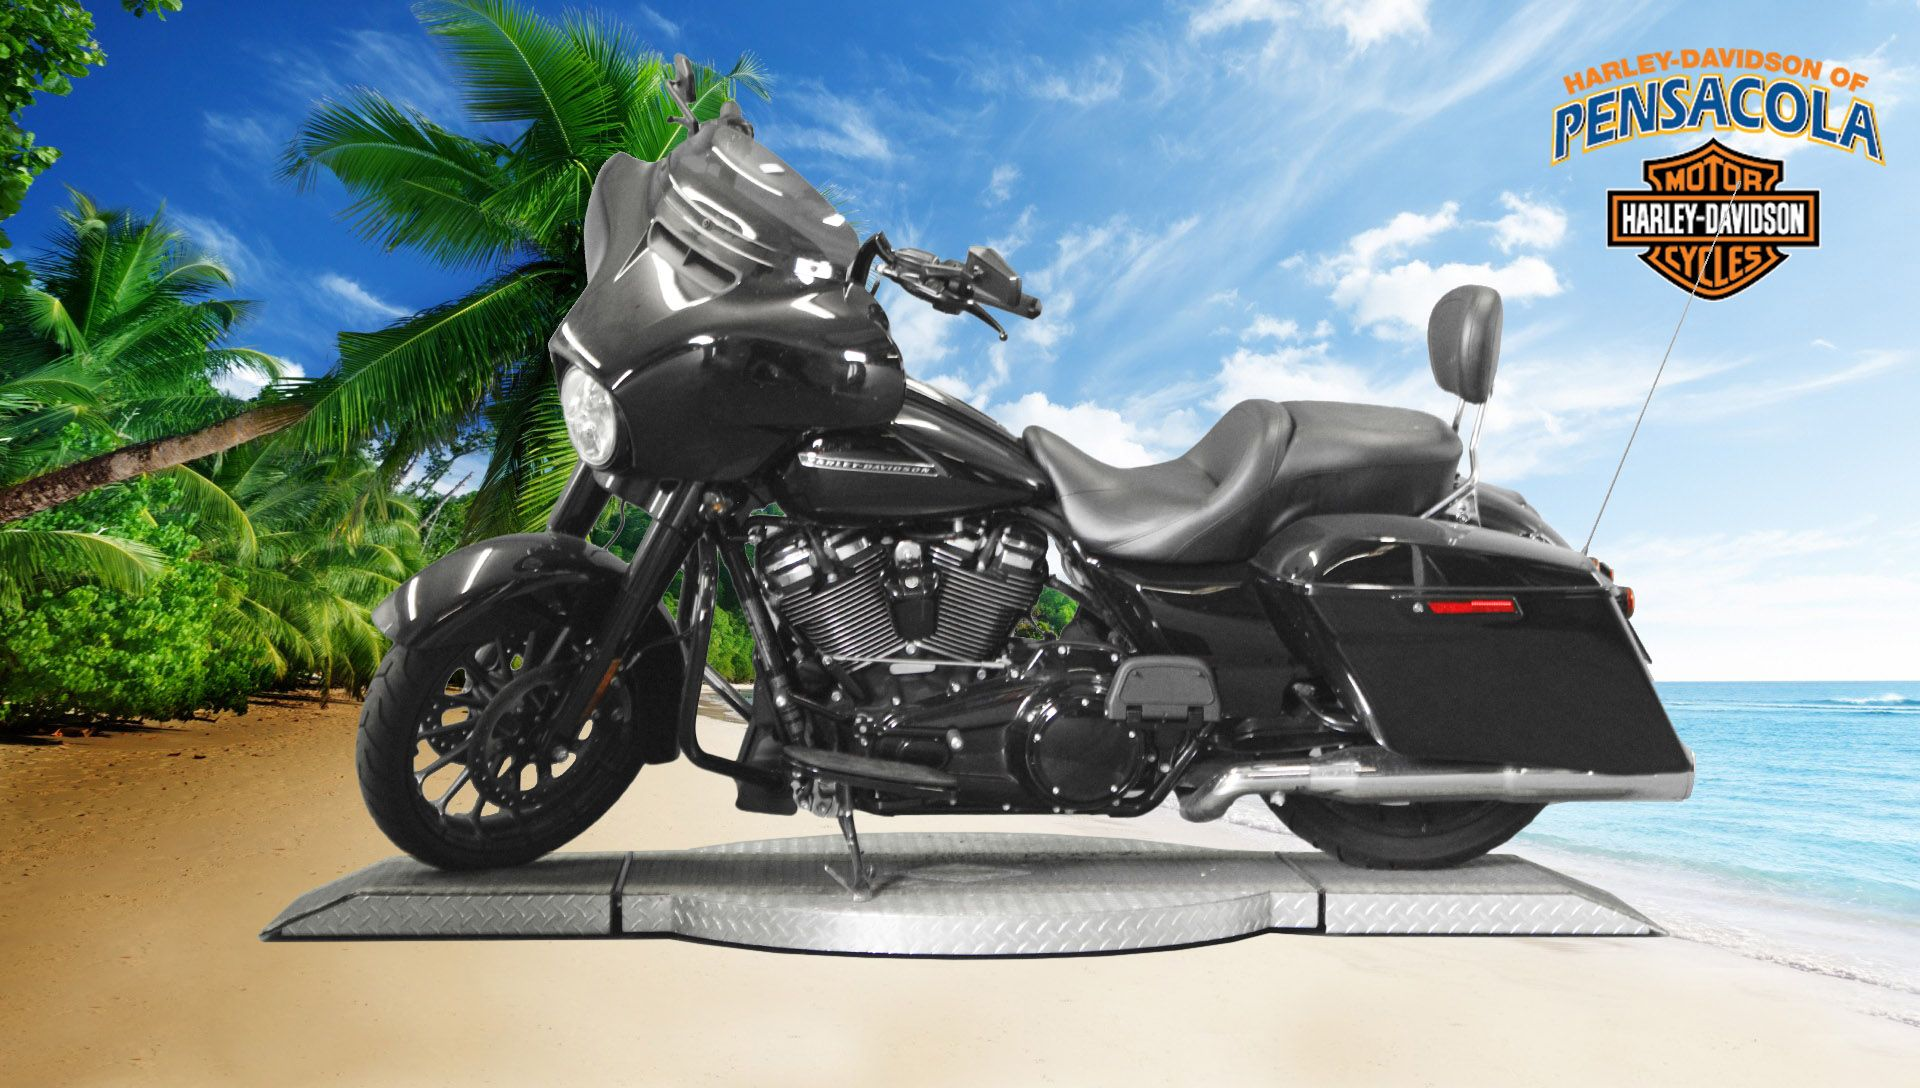 Pre-Owned 2018 Harley-Davidson Street Glide Special FLHXS